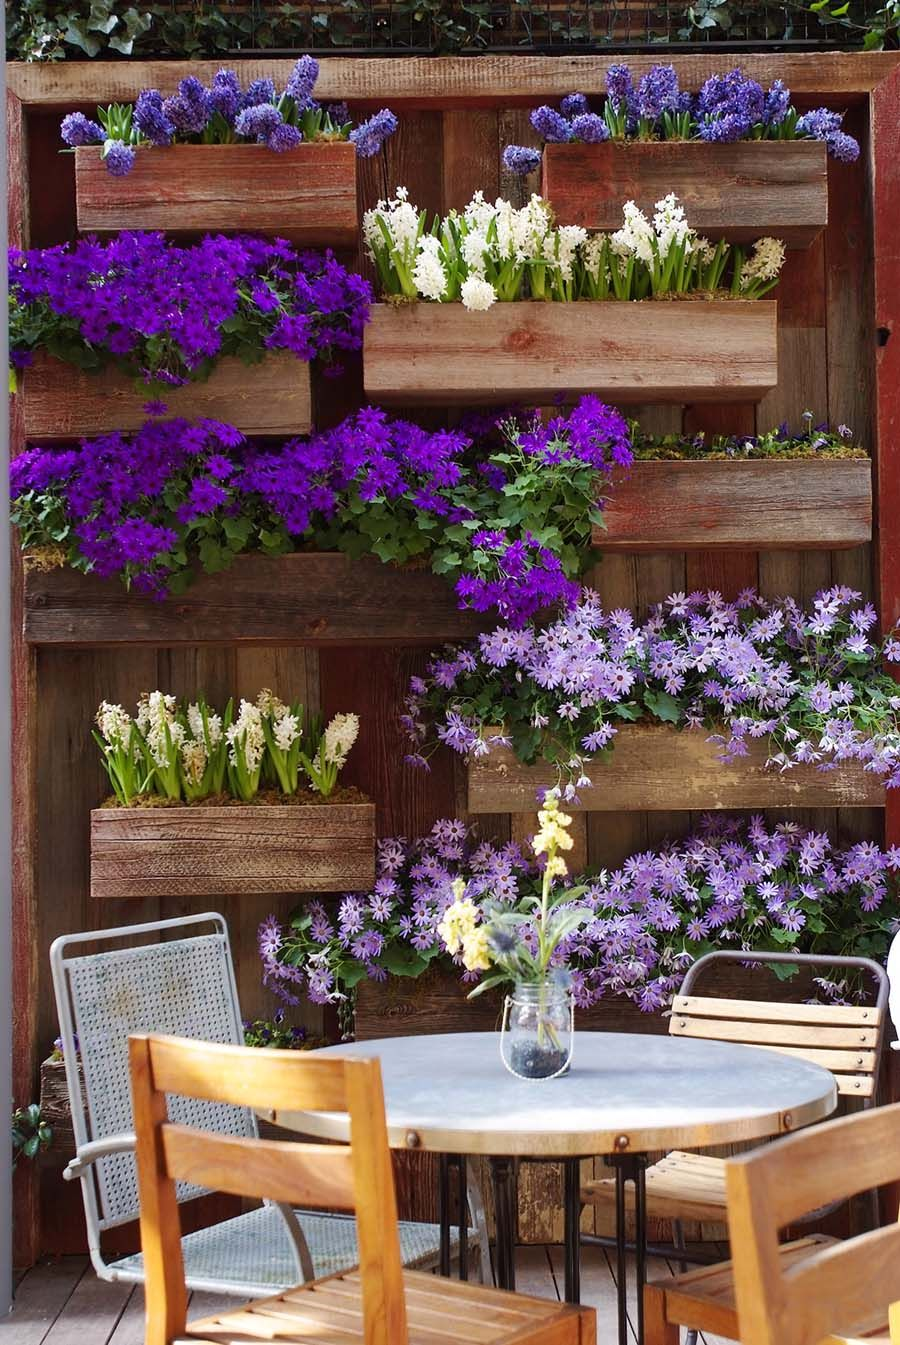 Hanging Garden Ideas 18 easy hanging gardens ideas for outdoors 50 Vertical Garden Ideas That Will Change The Way You Think About Gardening